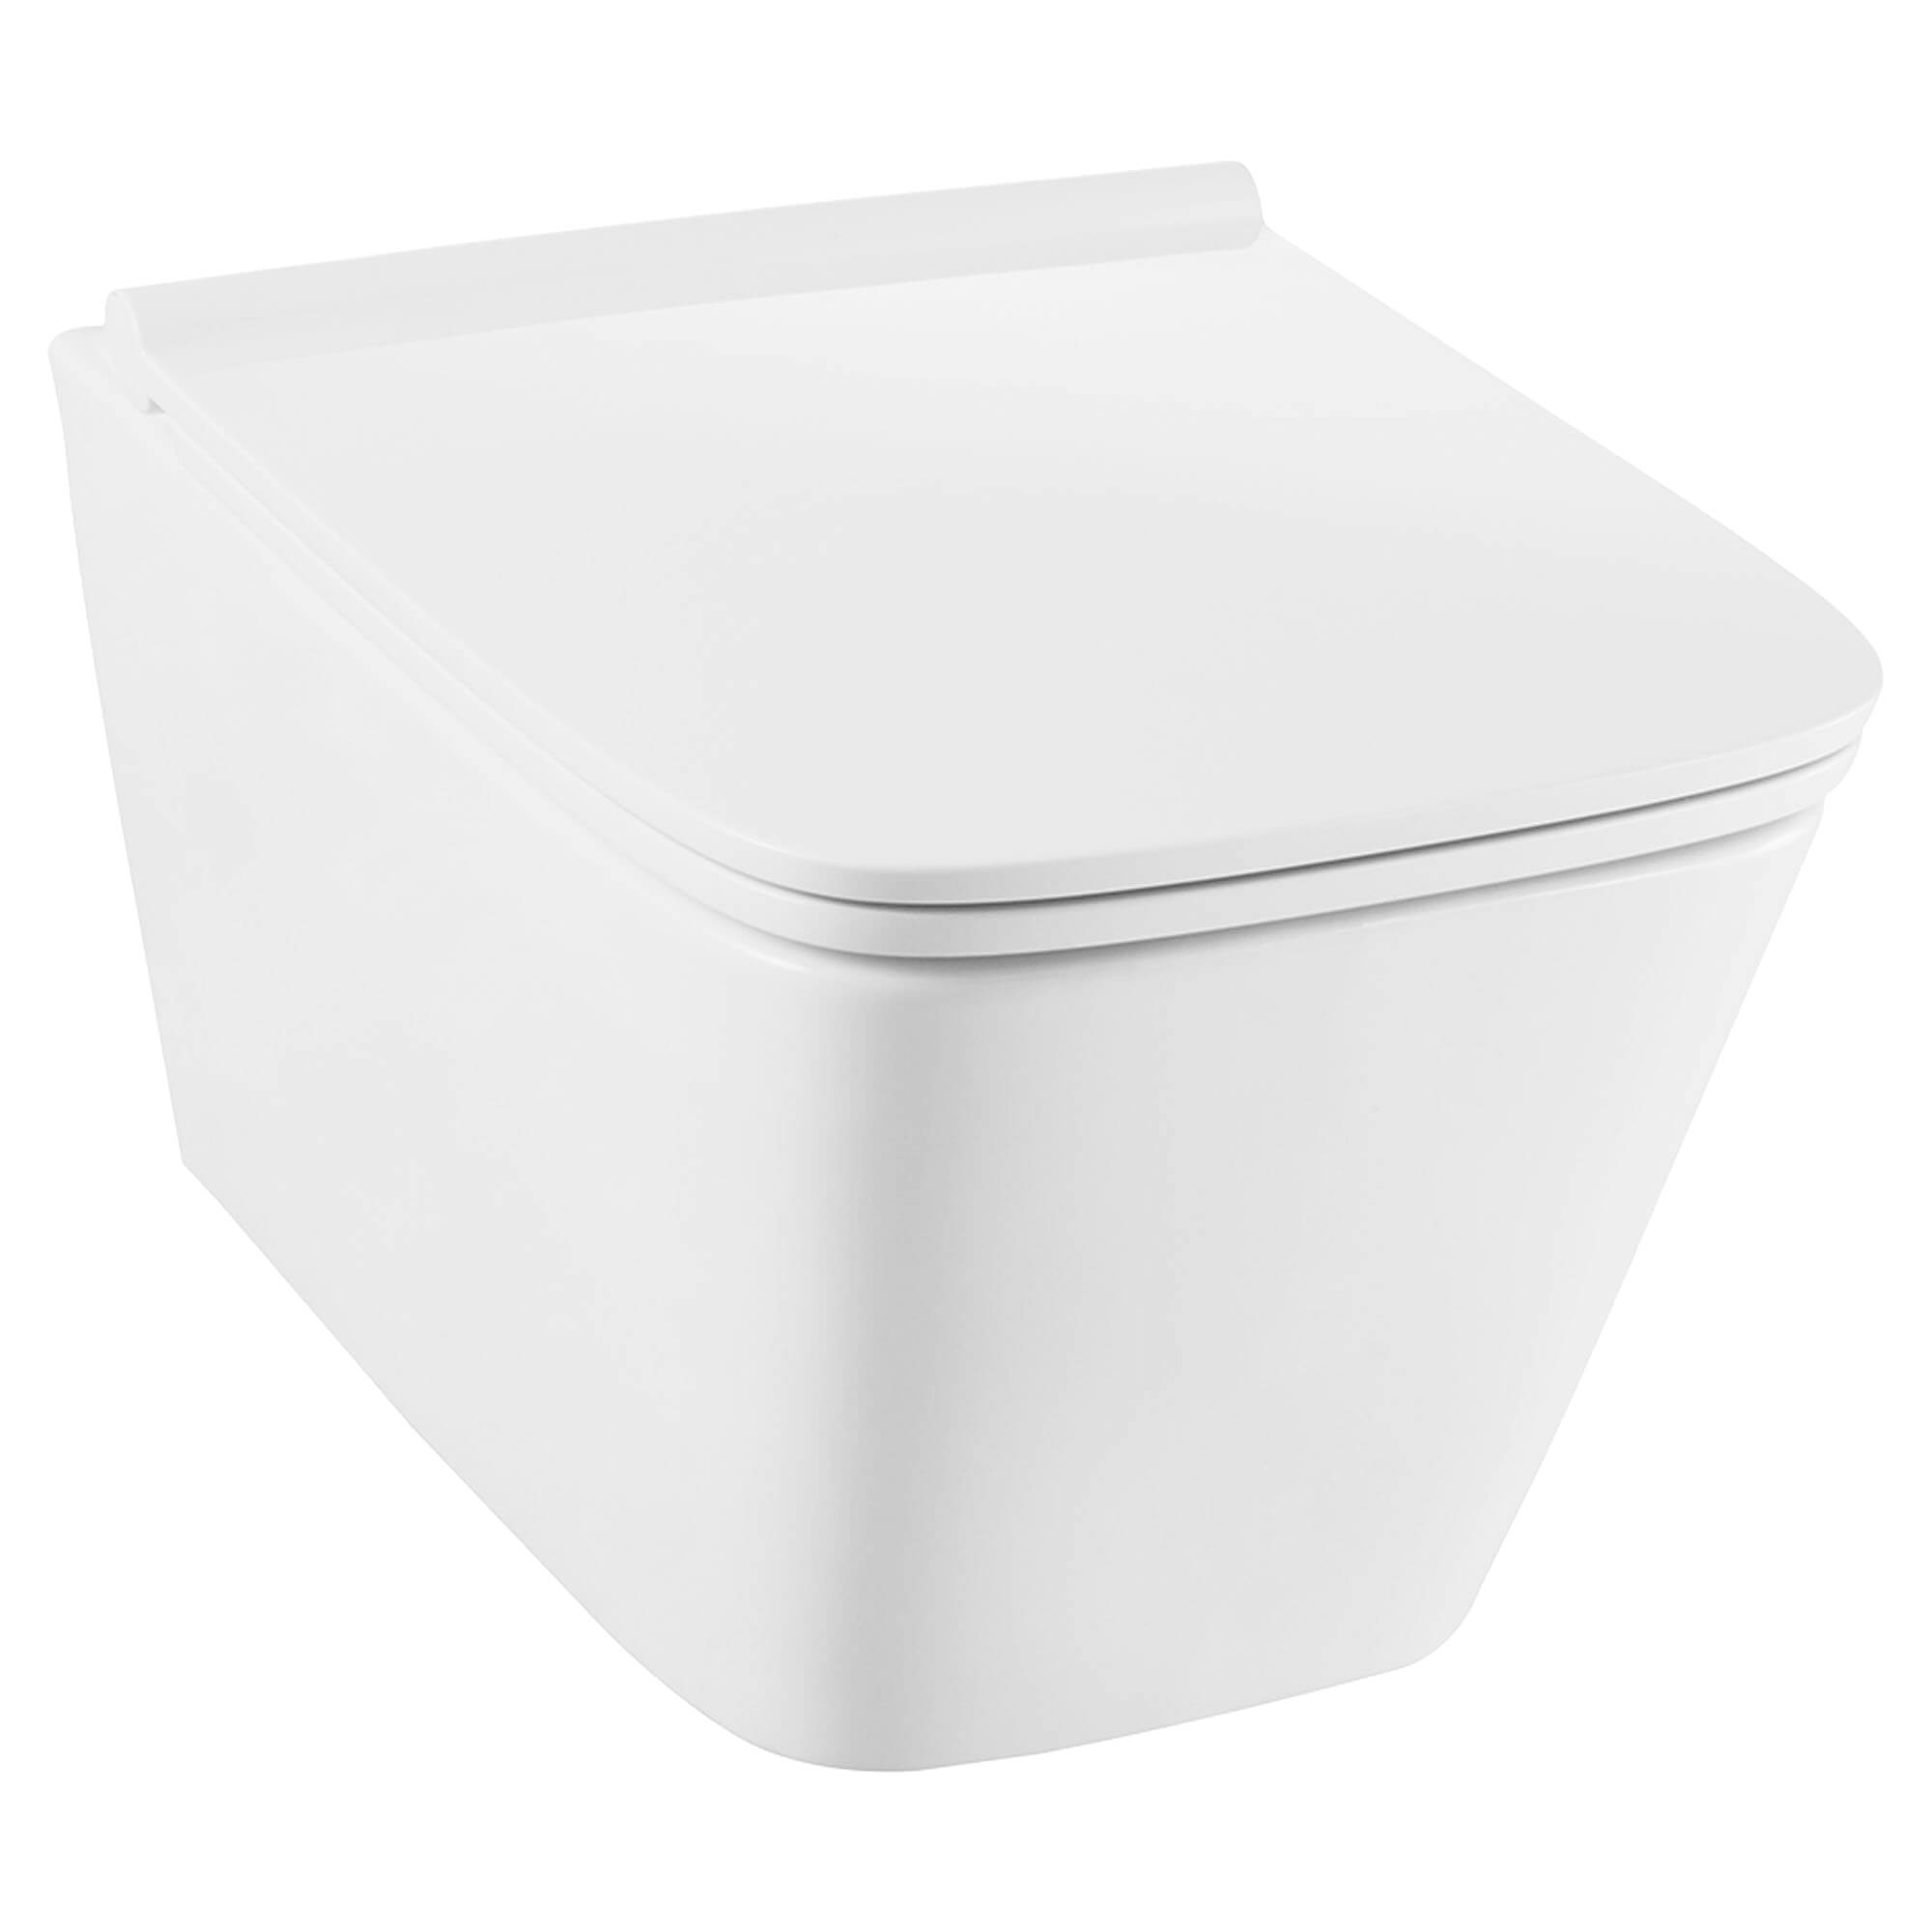 DXV Modulus Wall-Mounted Elongated Toilet